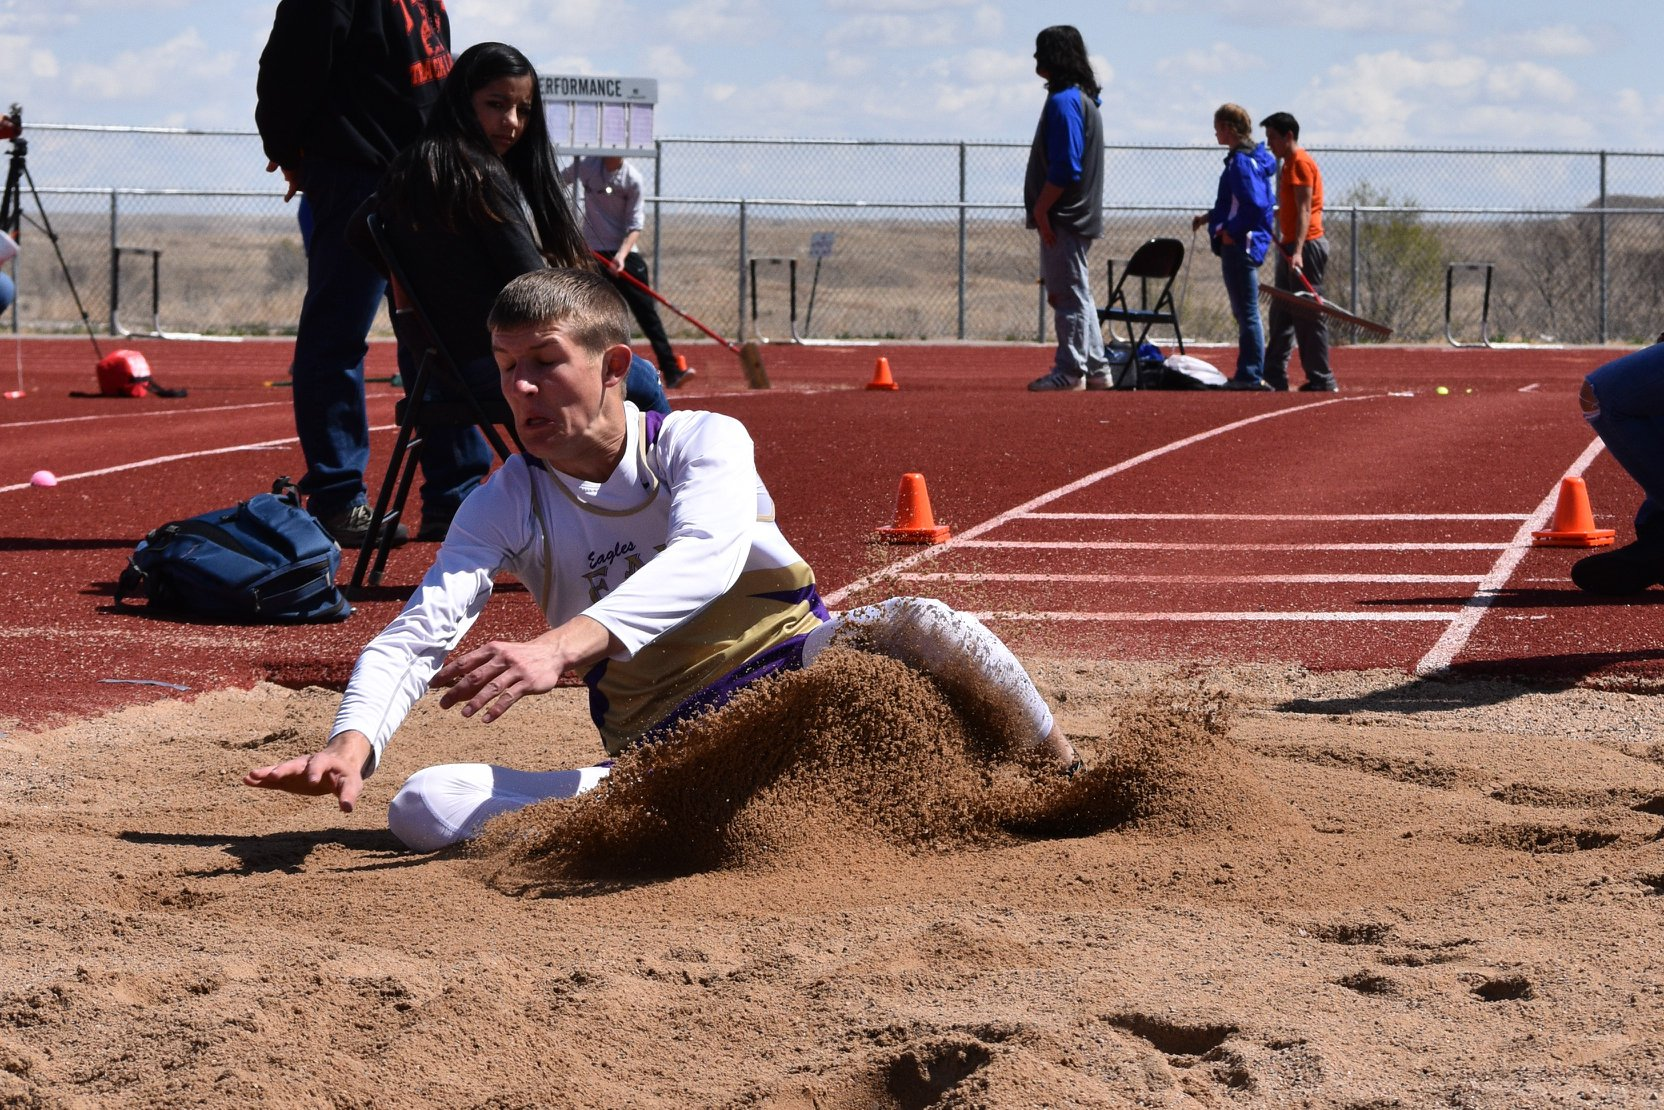 Zach Haase was just nudged out of the championship in the long jump by a 4A jumper from Pueblo West at the La Junta Meet.  (Photo credit: Duff Haase)